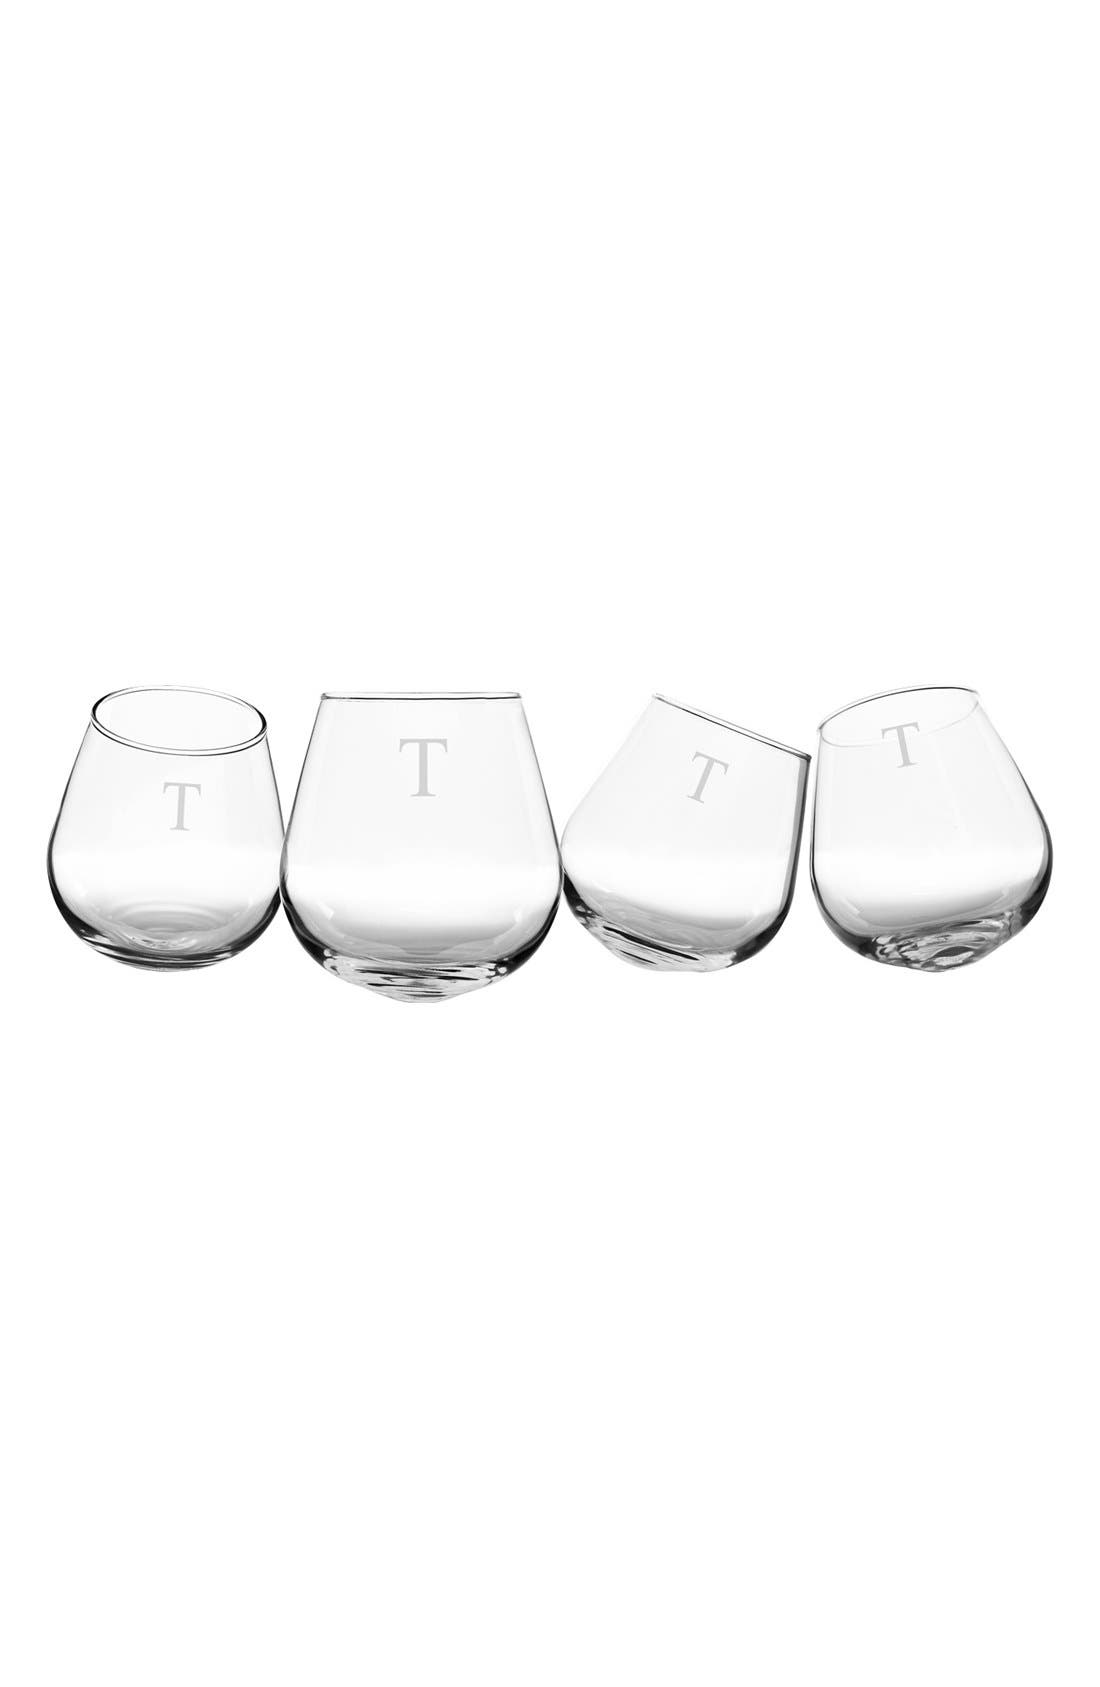 Monogram Tipsy Set of 4 Wine Glasses,                         Main,                         color, Clear T